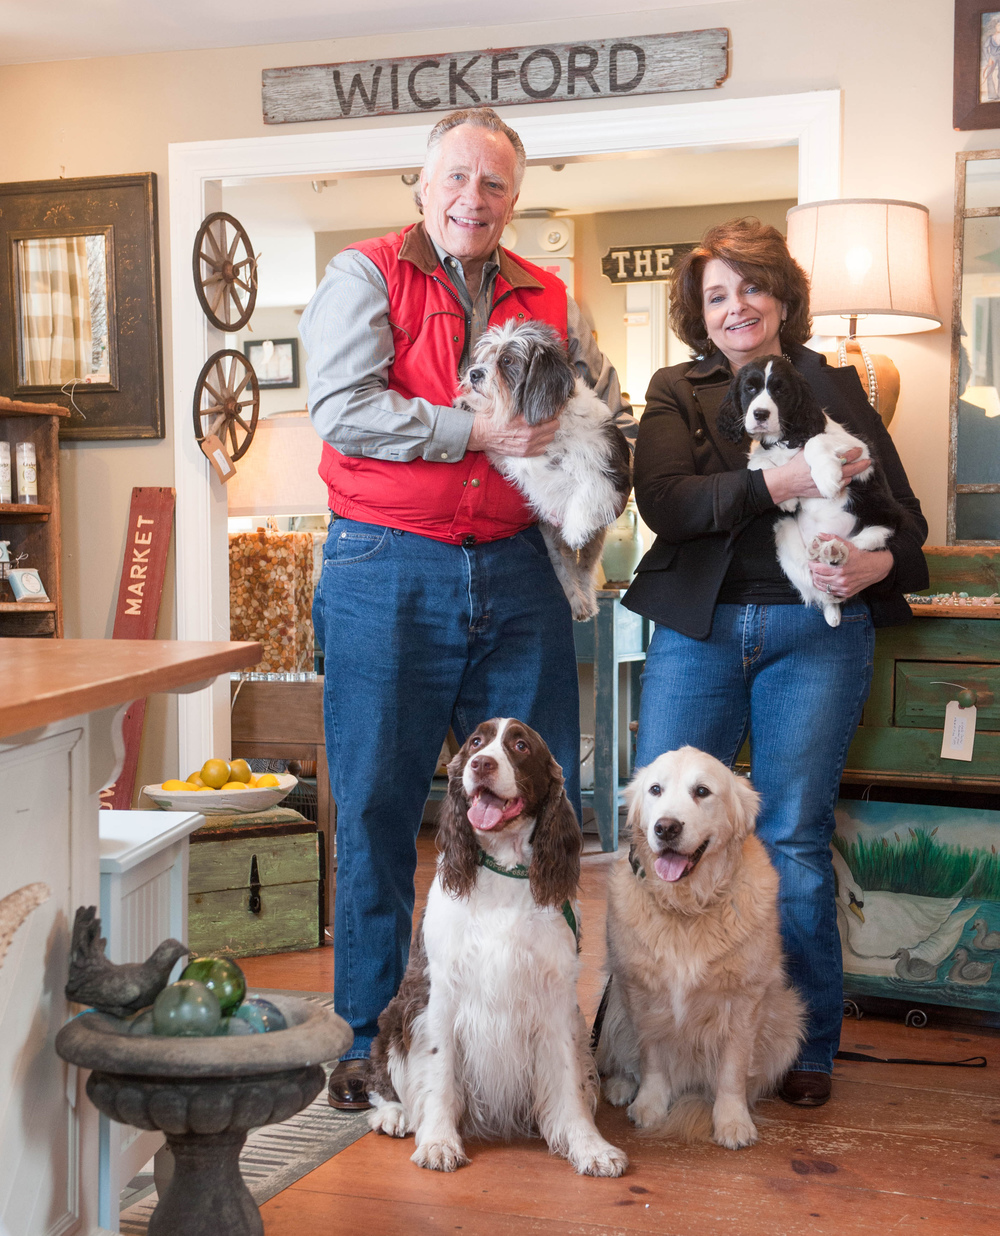 Deb and Toby the owners of The Wickford Collection, pose in their shop in Wickford, RI